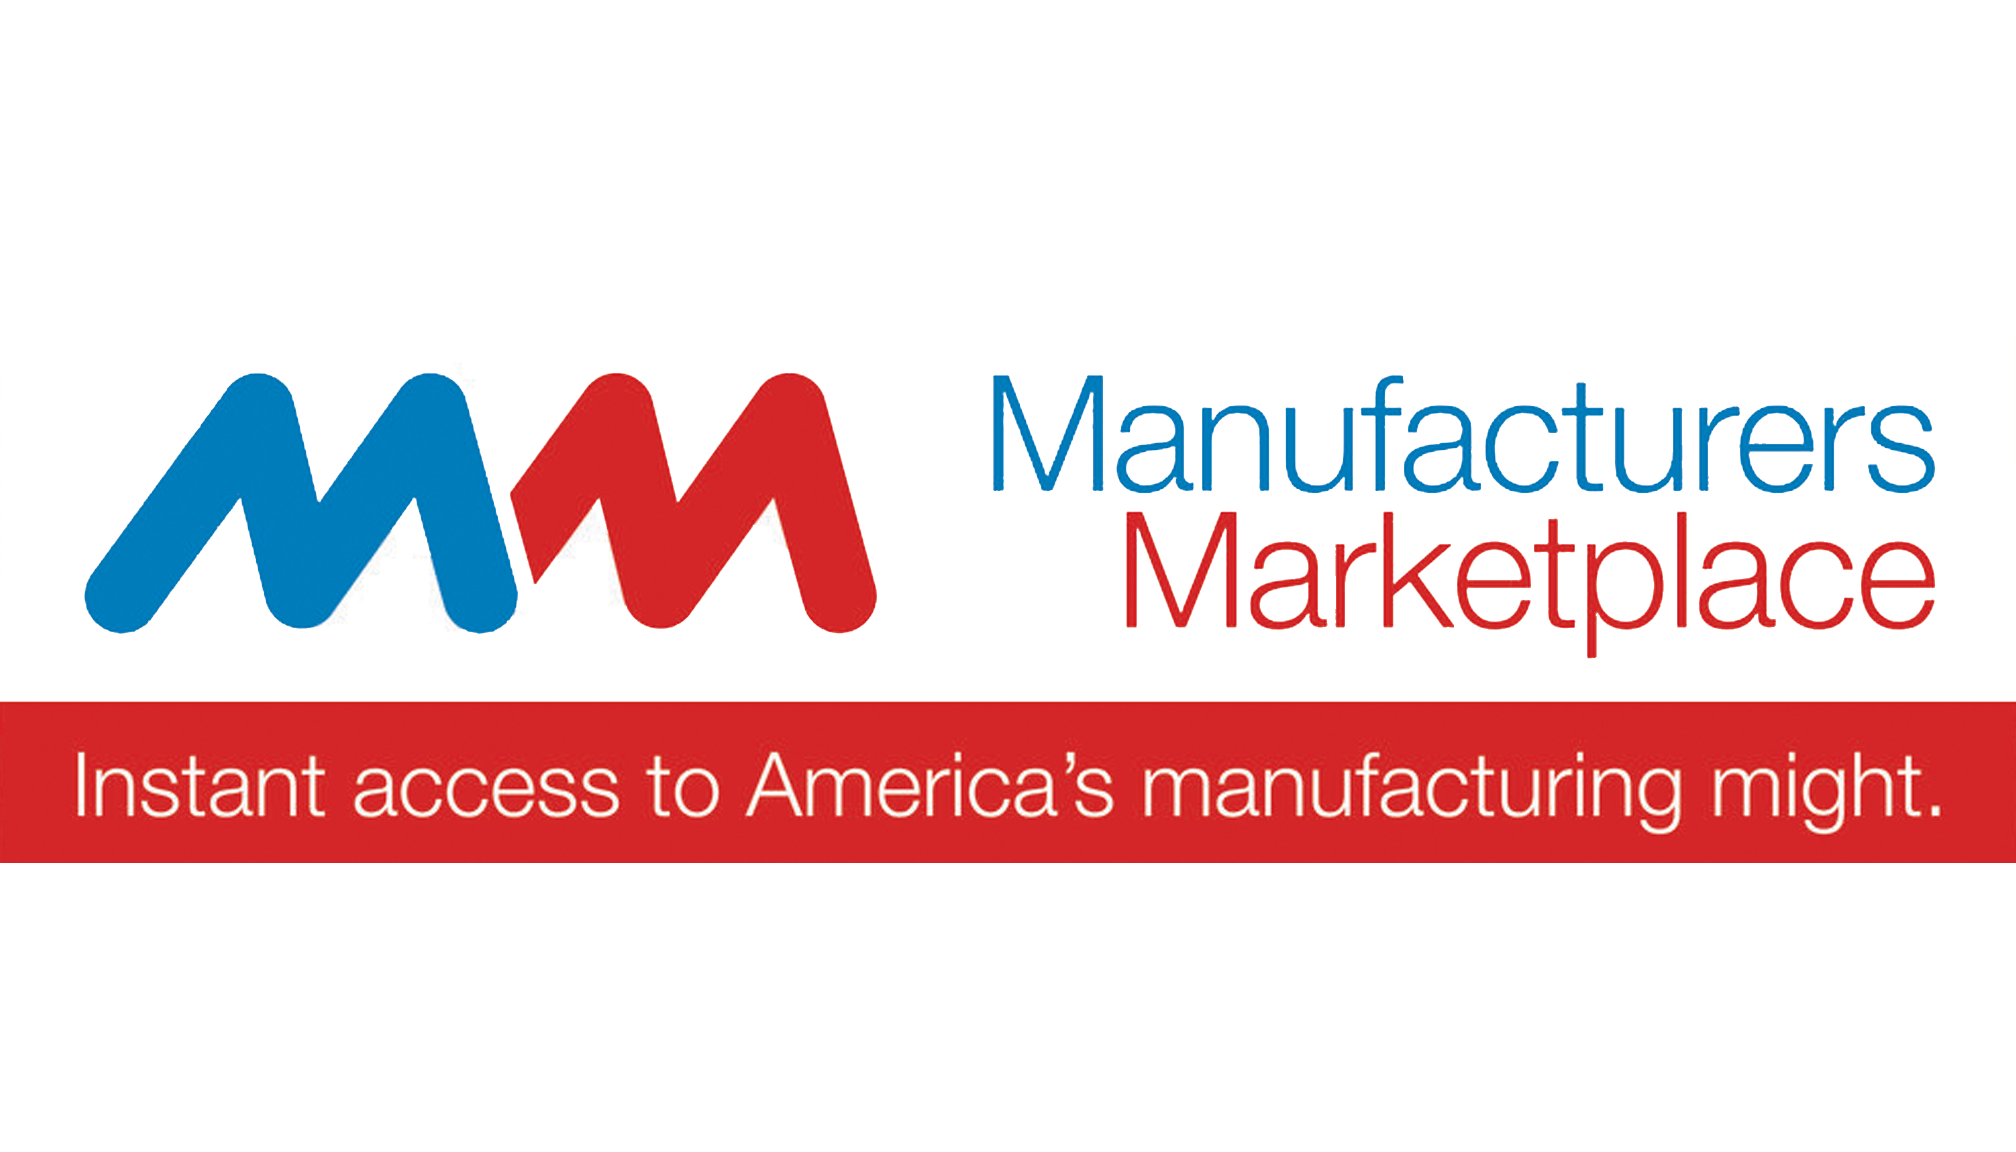 SPM - Manufacturers Marketplace